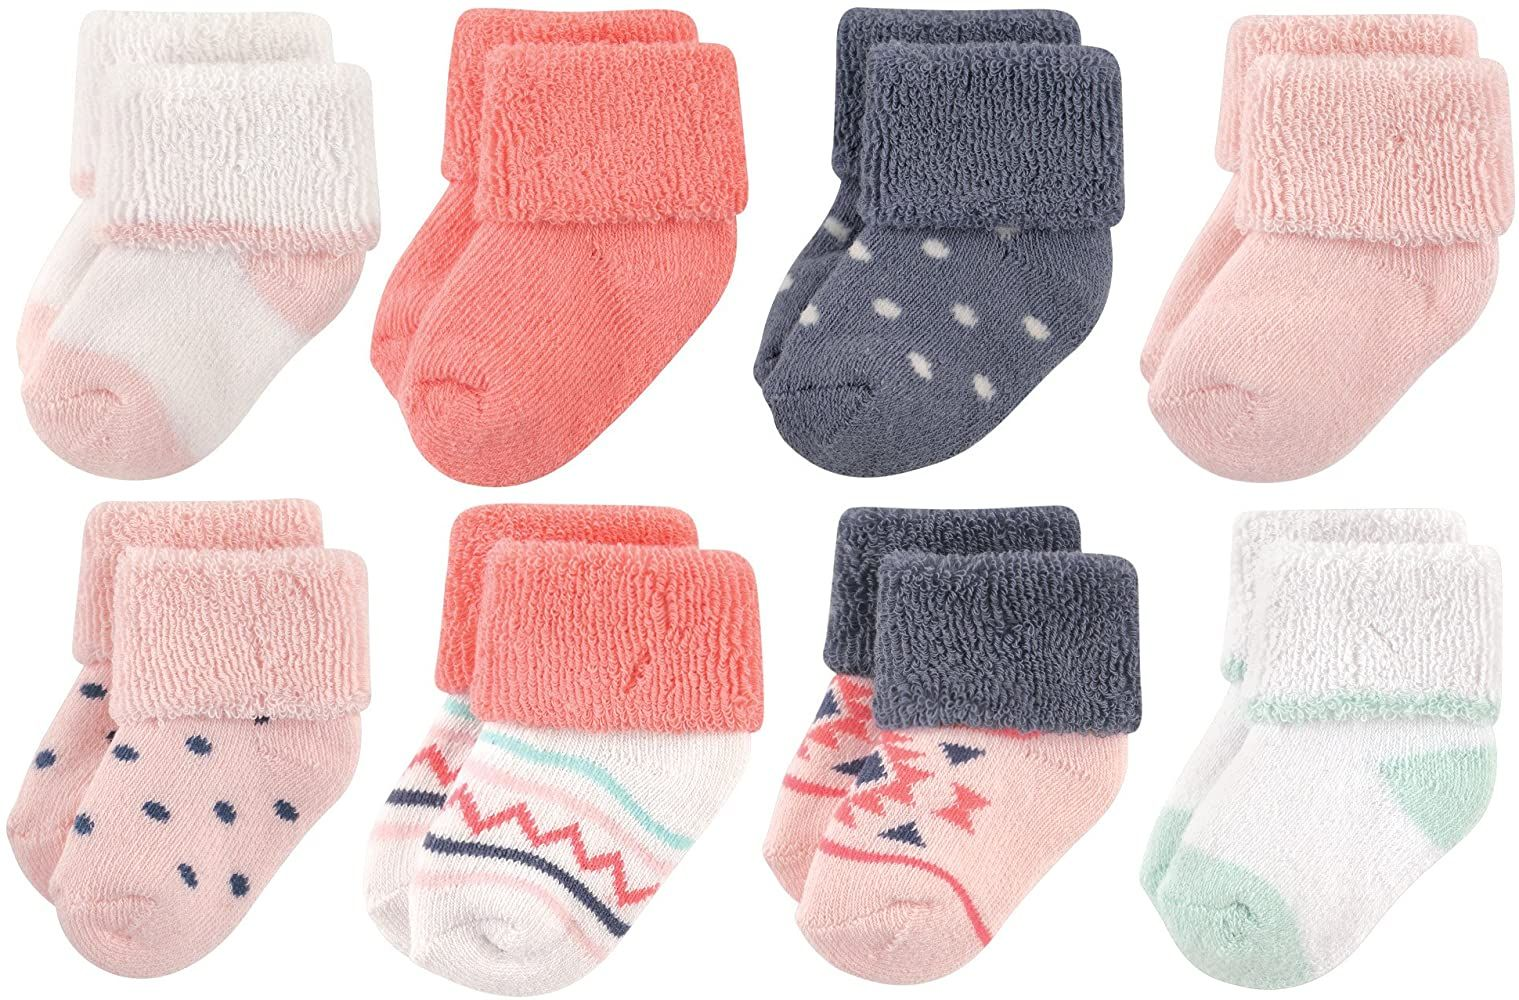 8 Pack Little Treasure Baby Terry Socks Ballerina 0-6 Months